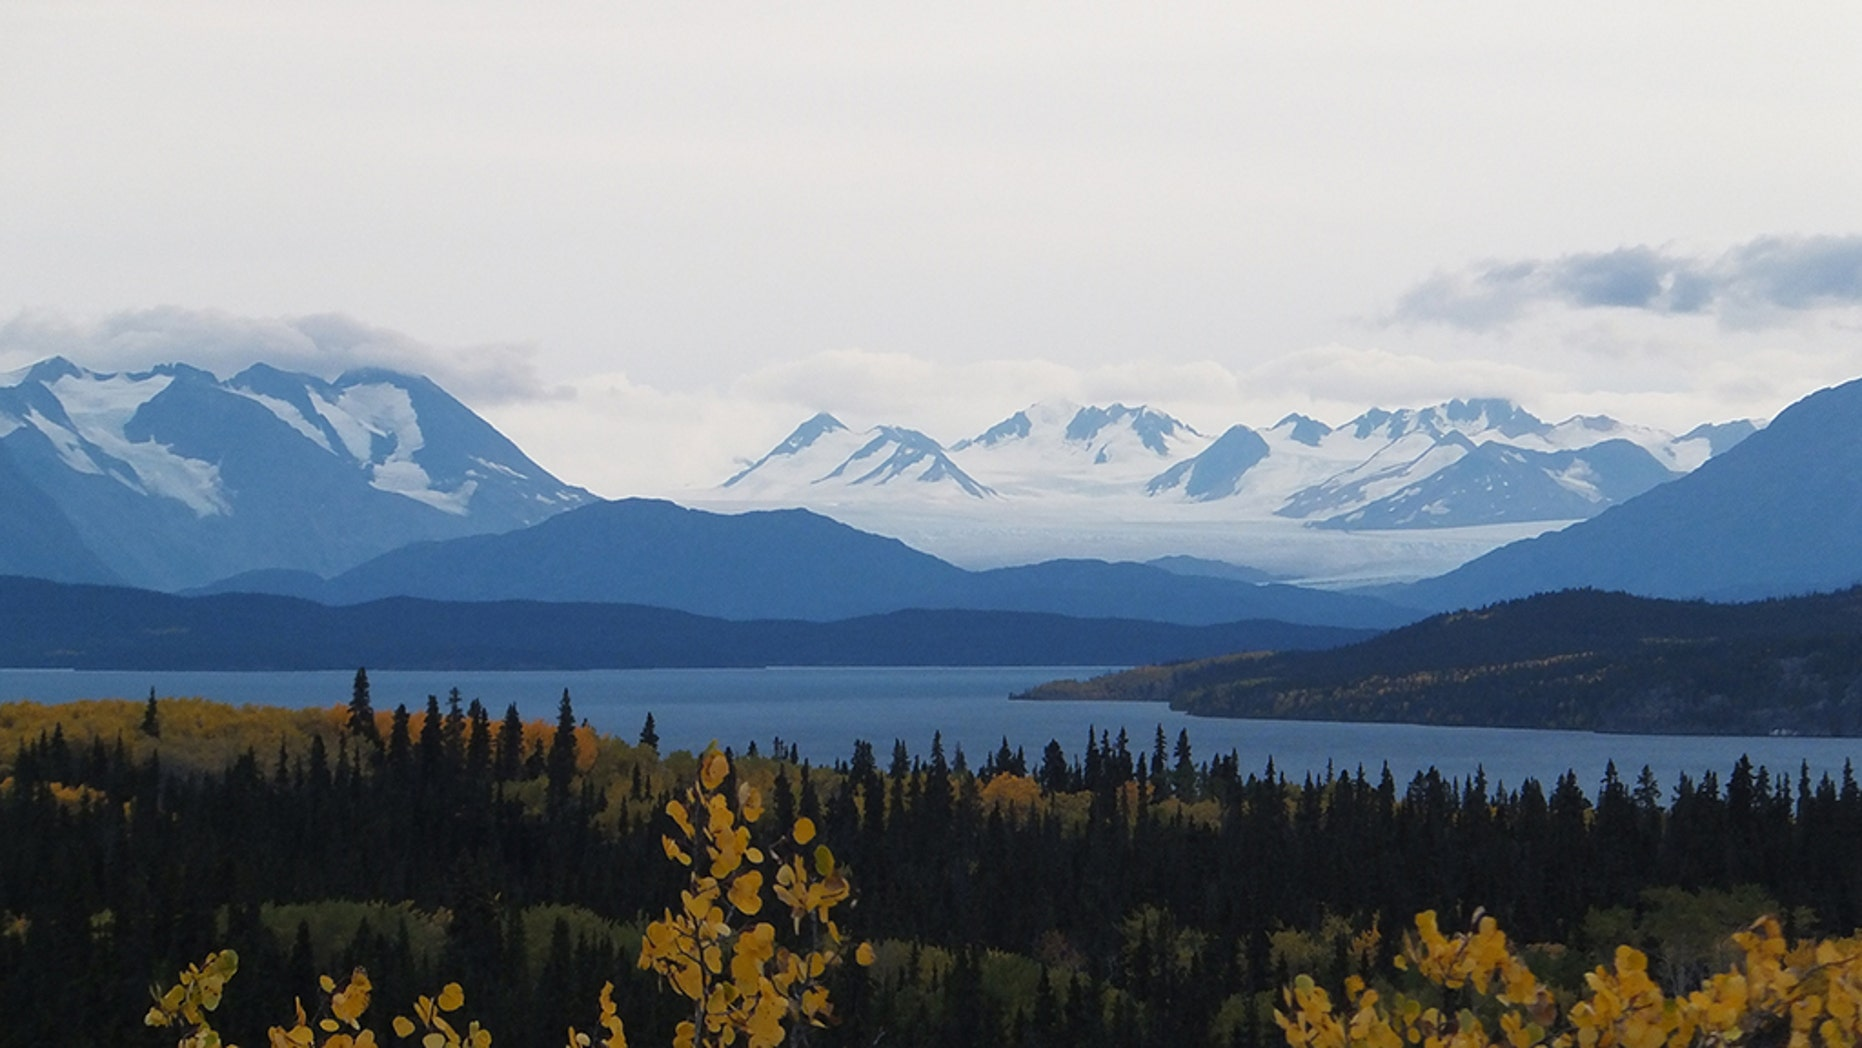 An American sailor reportedly got lost at sea after traveling down the Yukon River.